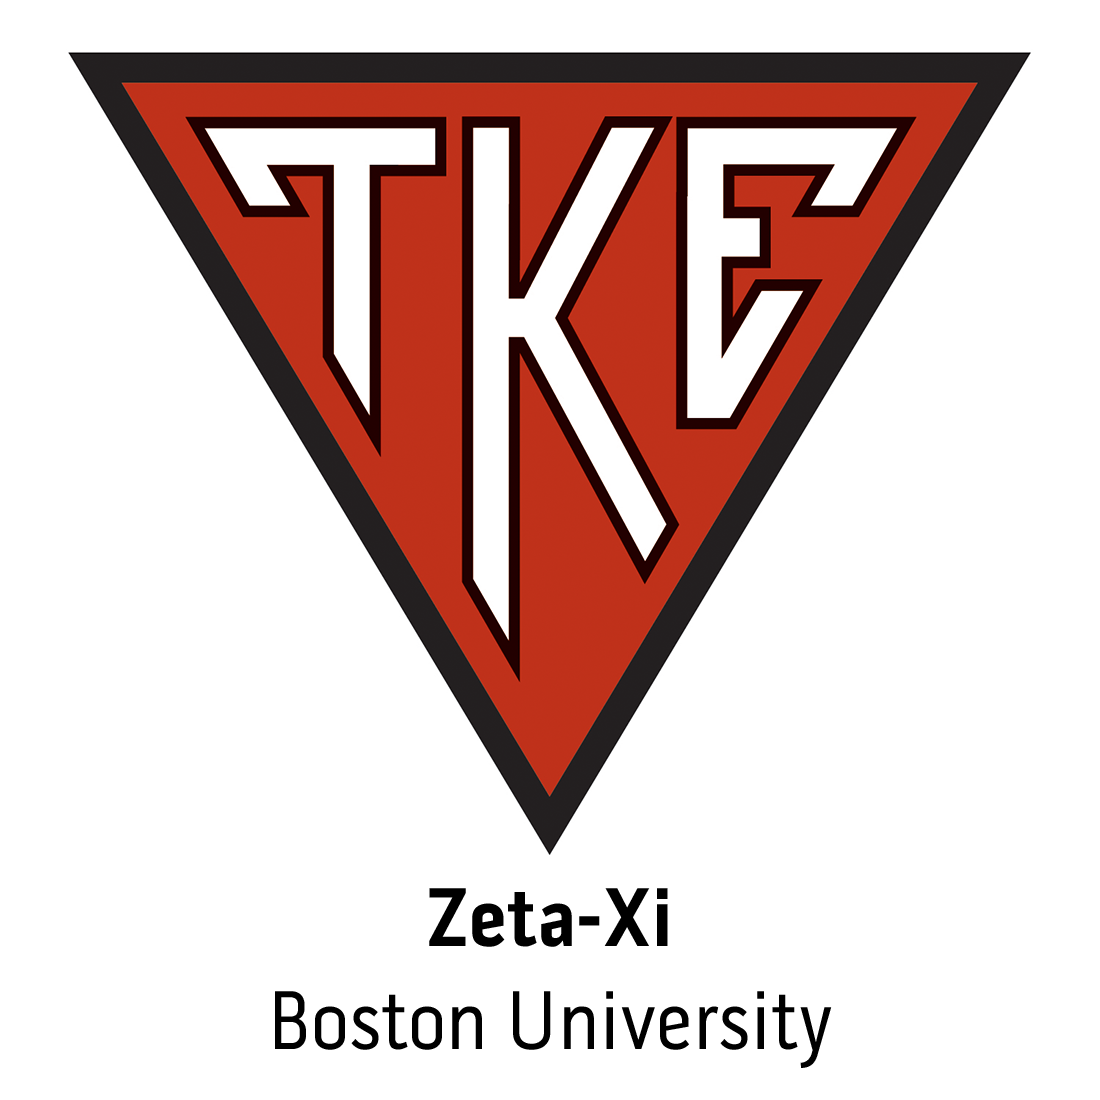 Zeta-Xi Chapter at Boston University